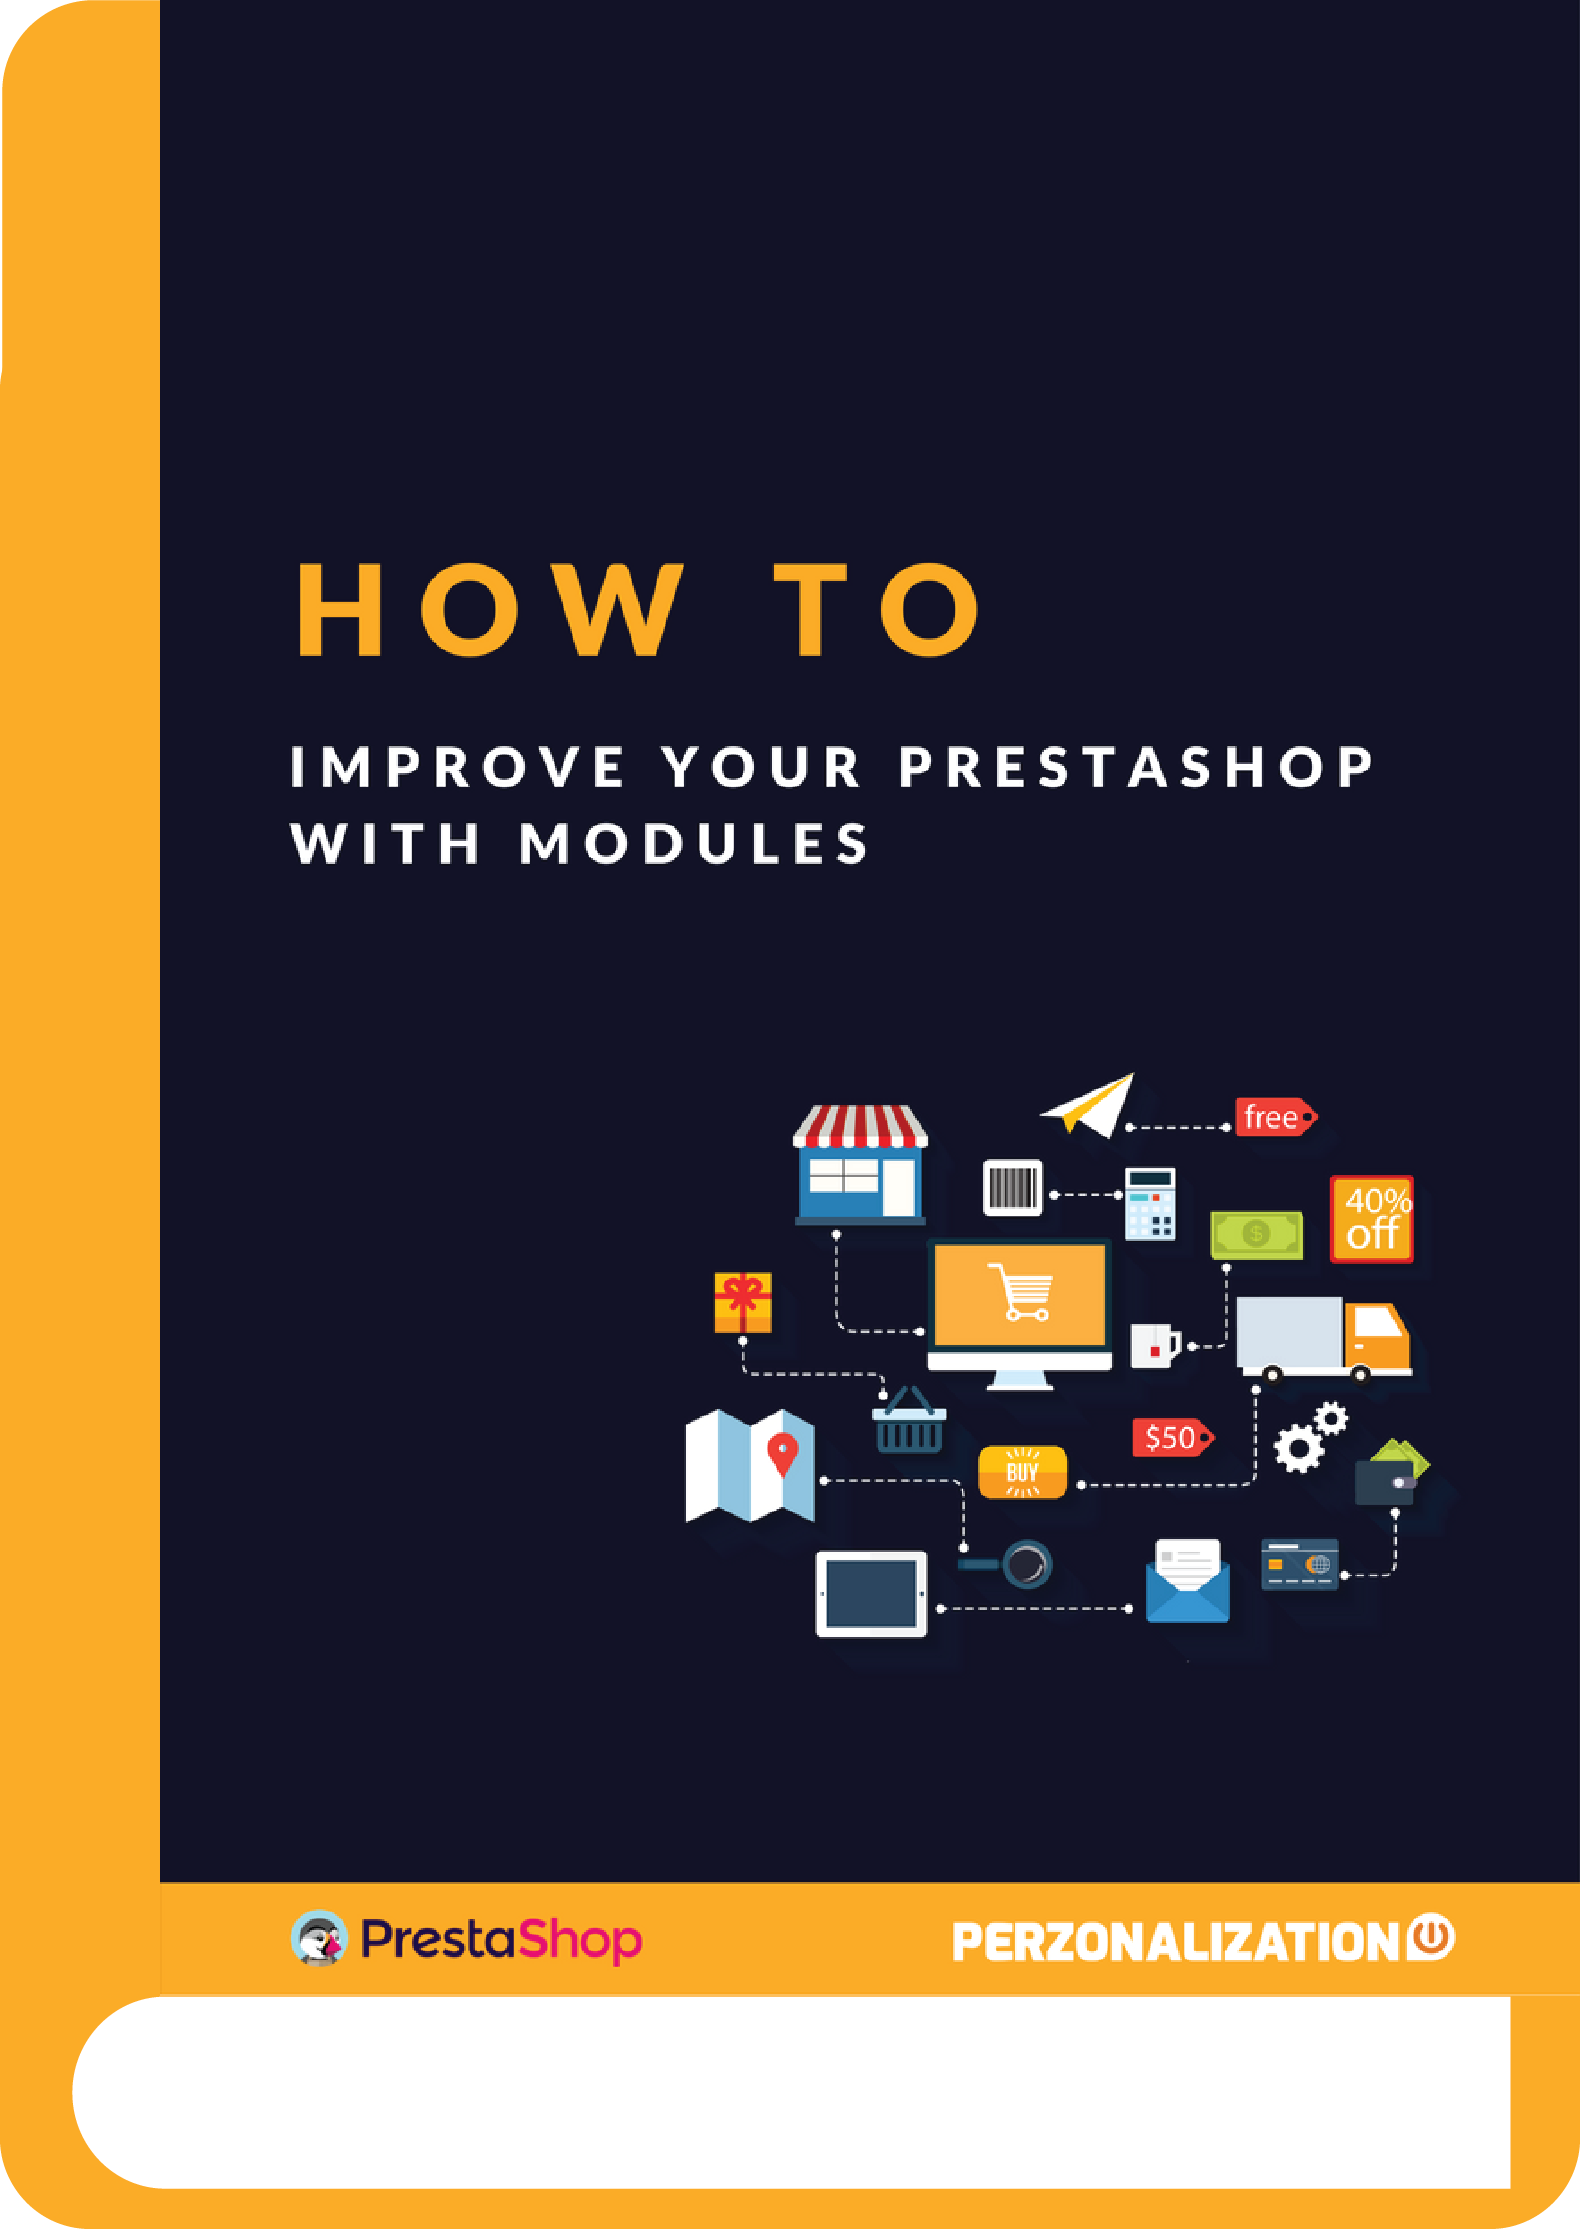 PrestaShop Modules should be your first thought when you plan to have your own e-commerce store just for the sheer amount of capabilities these come with.